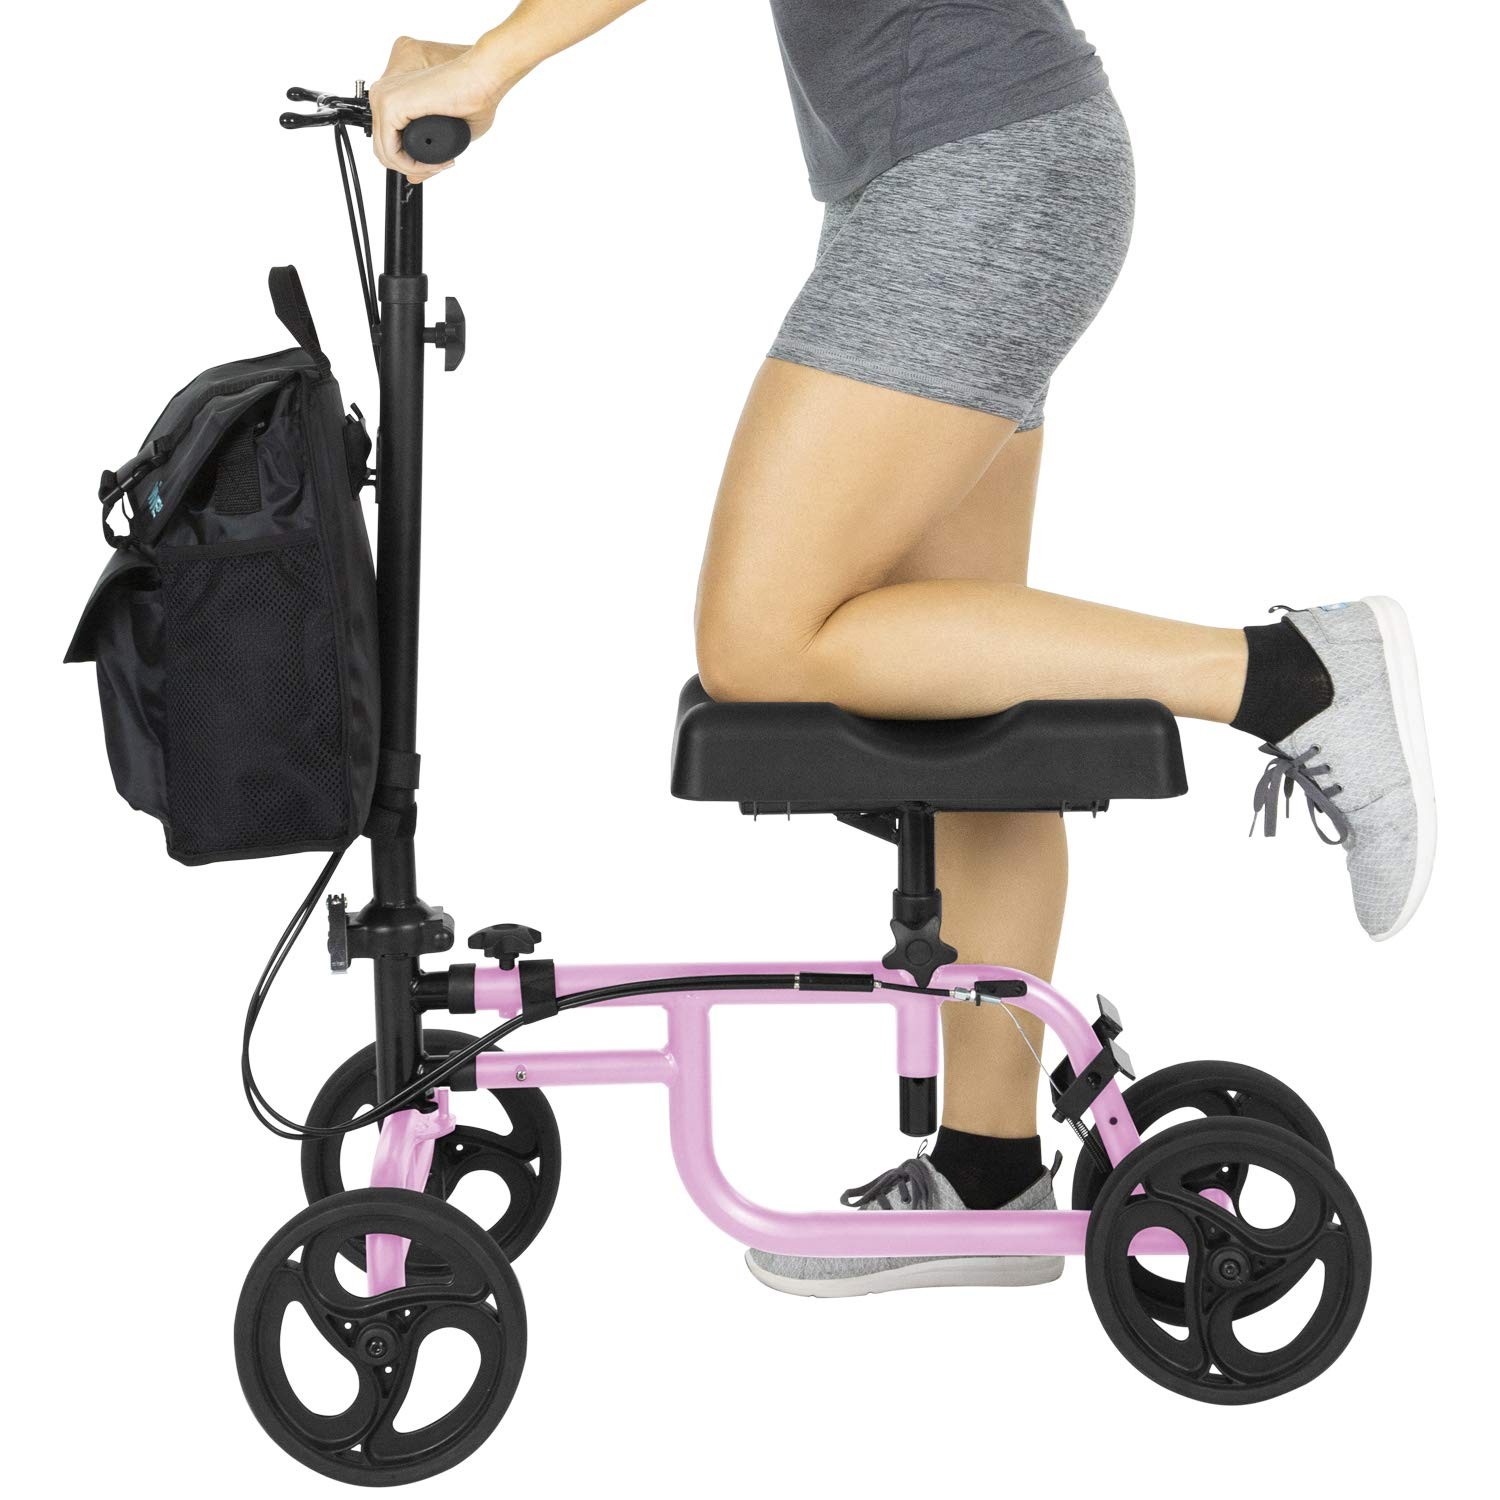 Vive Knee Walker - Steerable Scooter For Broken Leg, Foot, Ankle Injuries - Kneeling Quad Roller Cart - Orthopedic Seat Pad For Adult and Elderly Medical Mobility - 4 Wheel Caddy Crutch - Bag Included by Vive